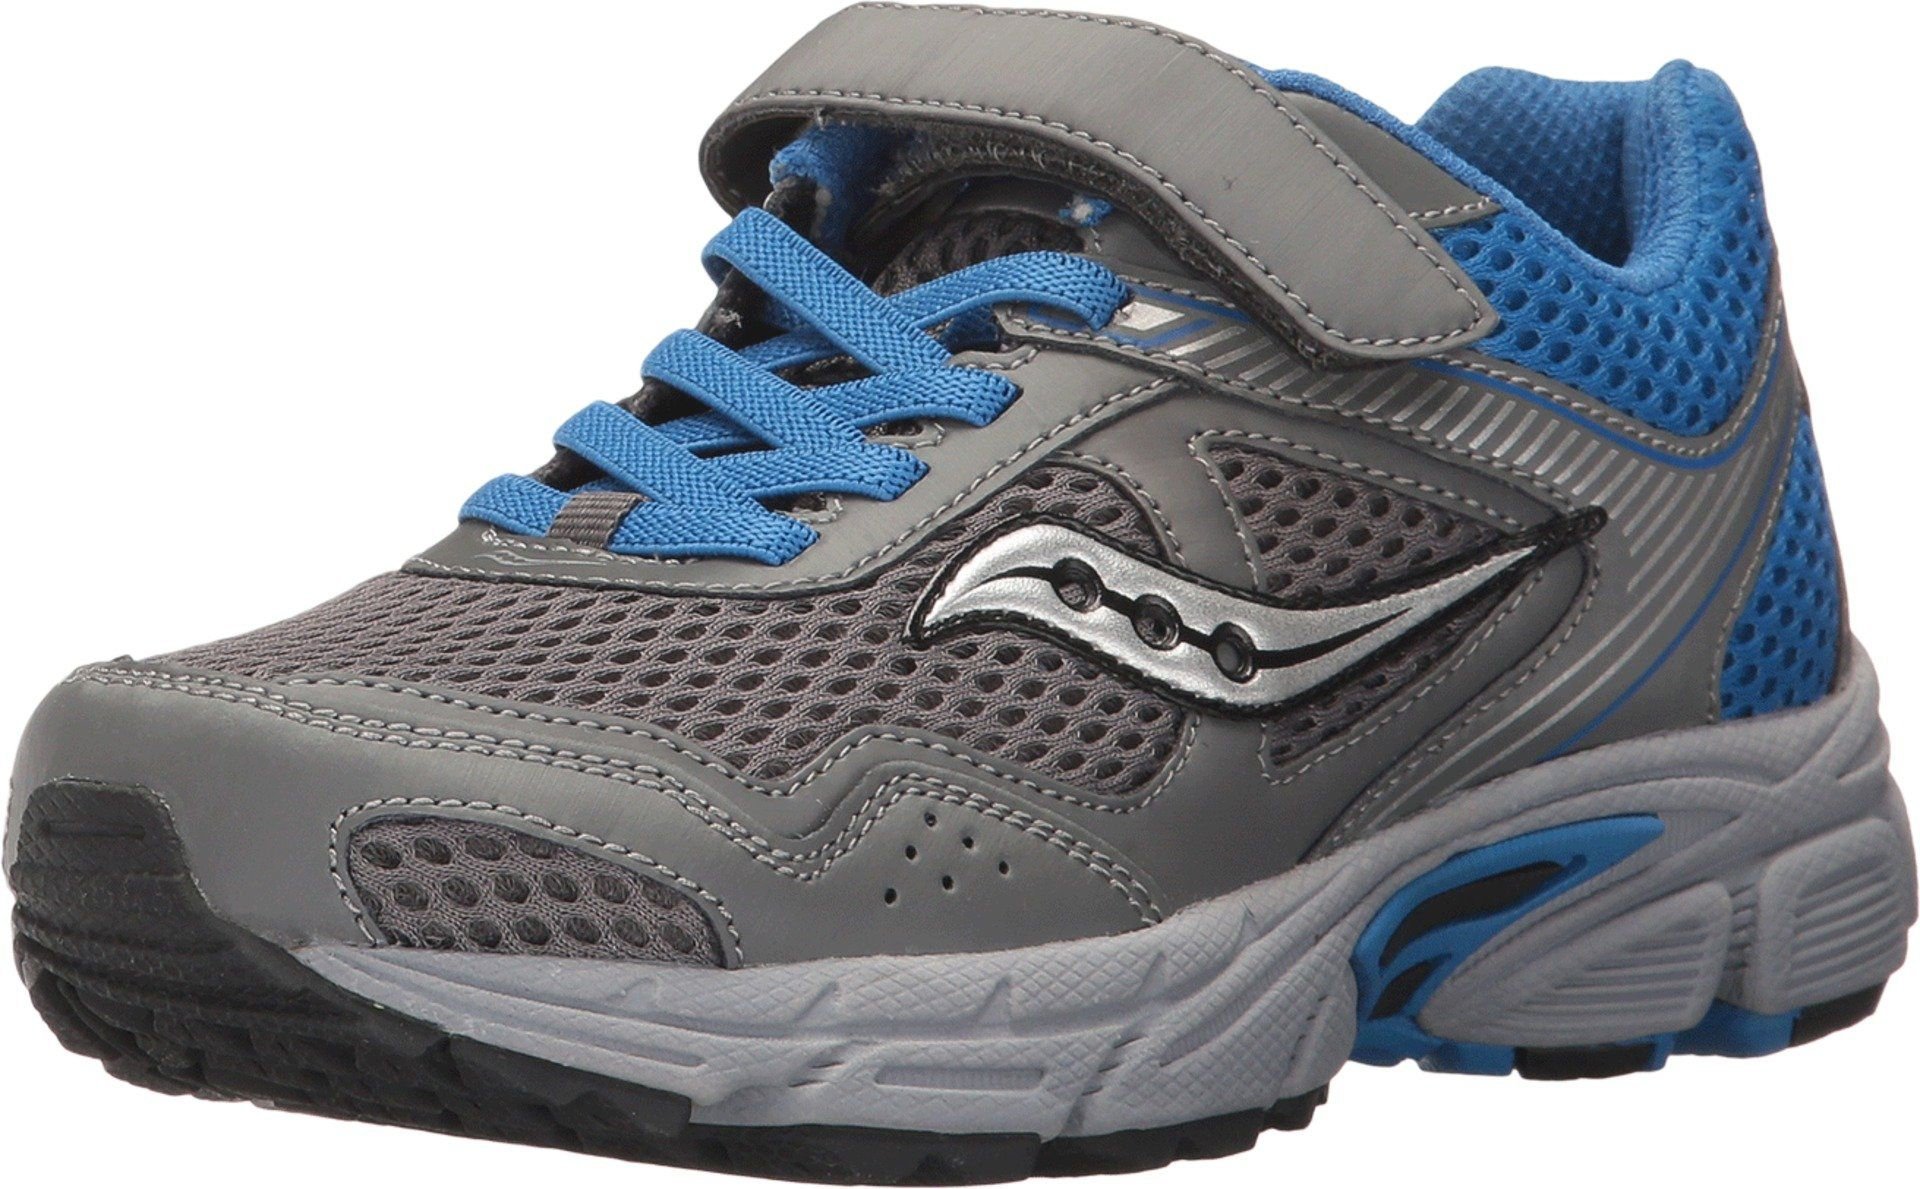 53b4c21c4029 Saucony Boys  Cohesion 10 a C Running-Shoes